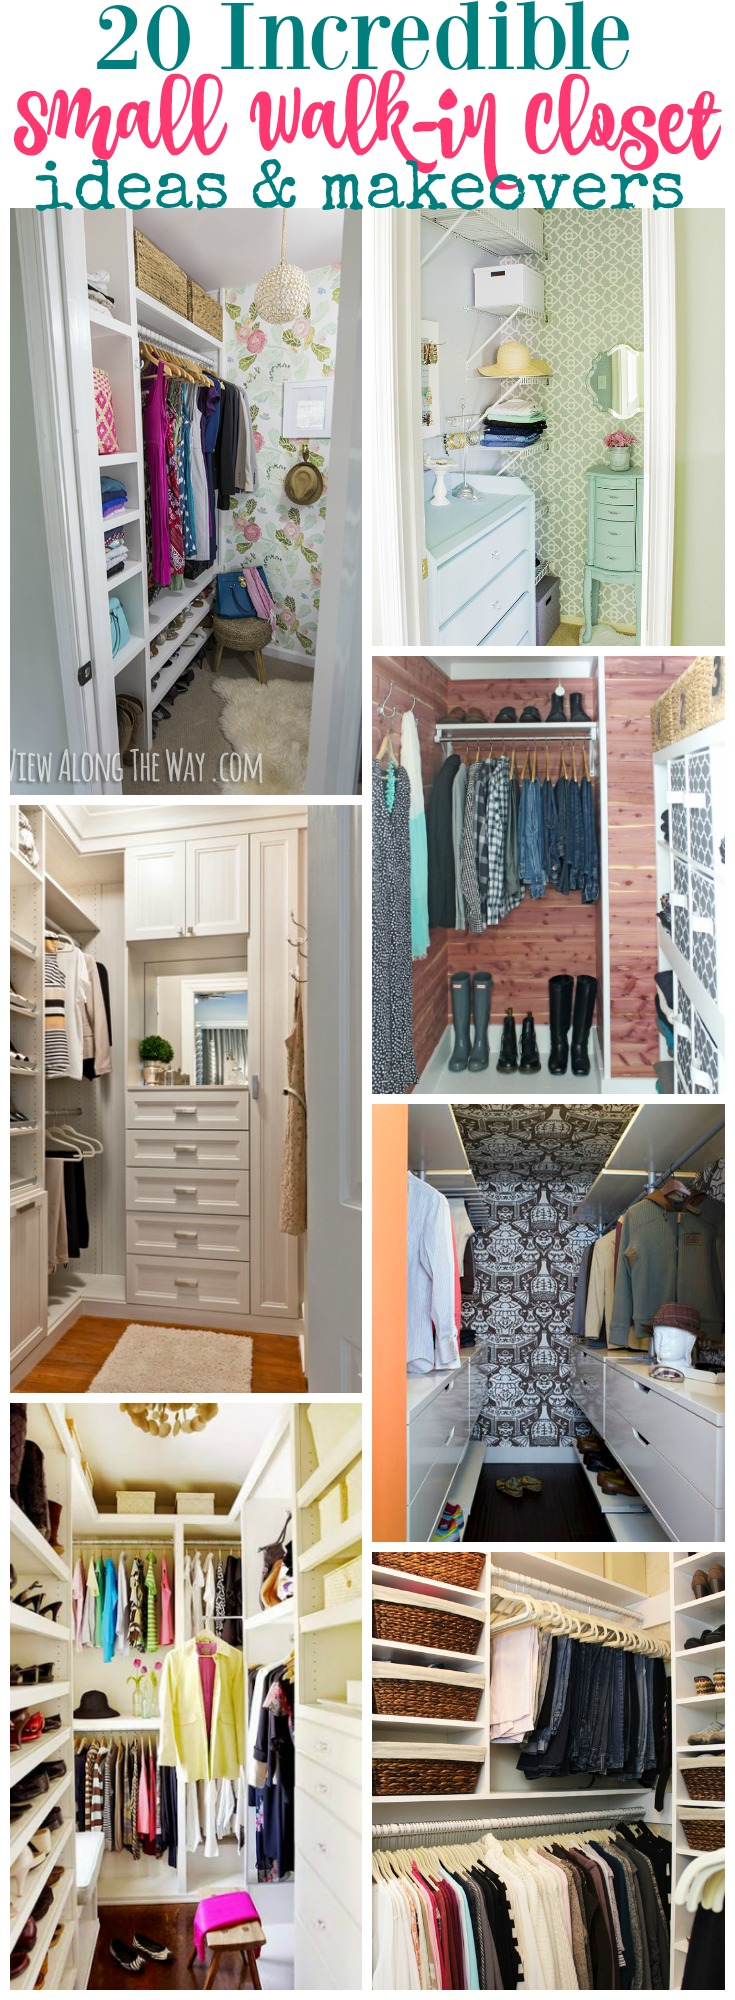 Diy Walk In Closet | Diy Custom Closet Ideas | How To Make Your Own Closet